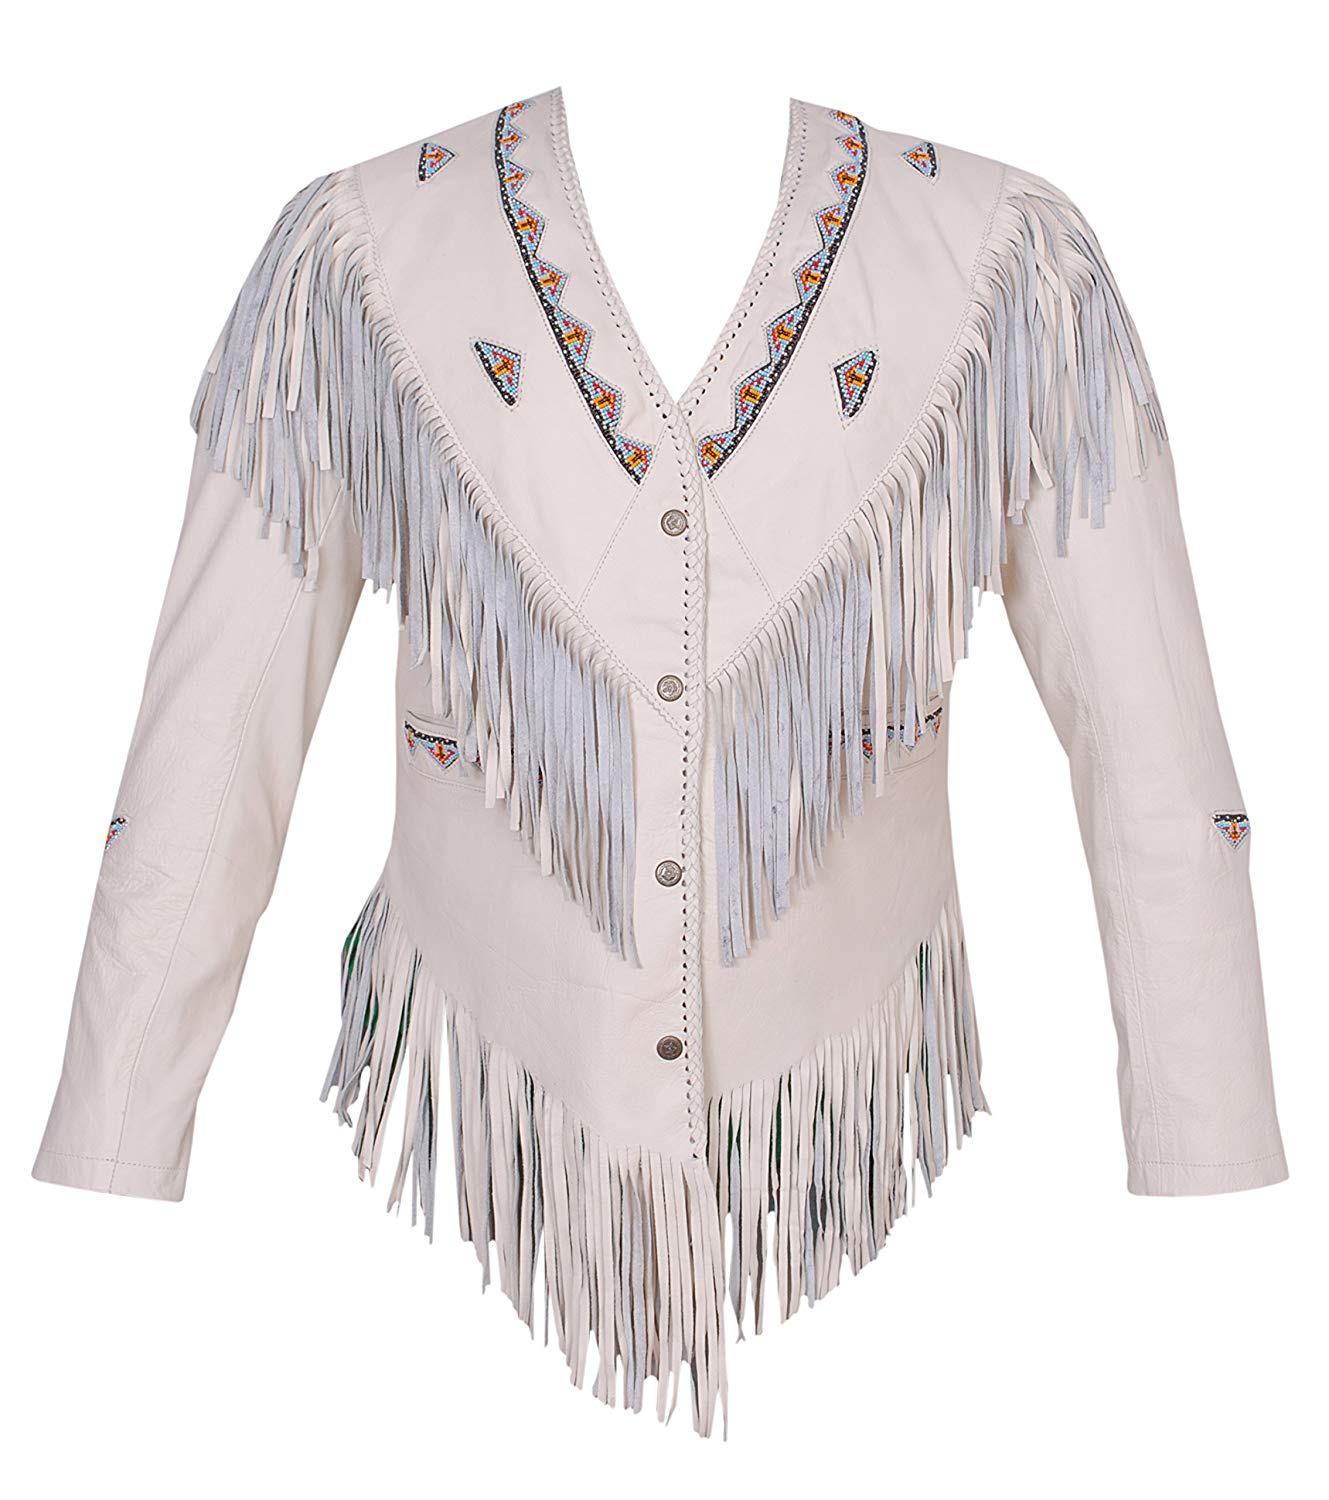 eaf08fc4 Get Quotations · Women's Western Genuine Leather Shirt Cowboy Style Jacket  with Fringe Beaded Size Small to 4XL